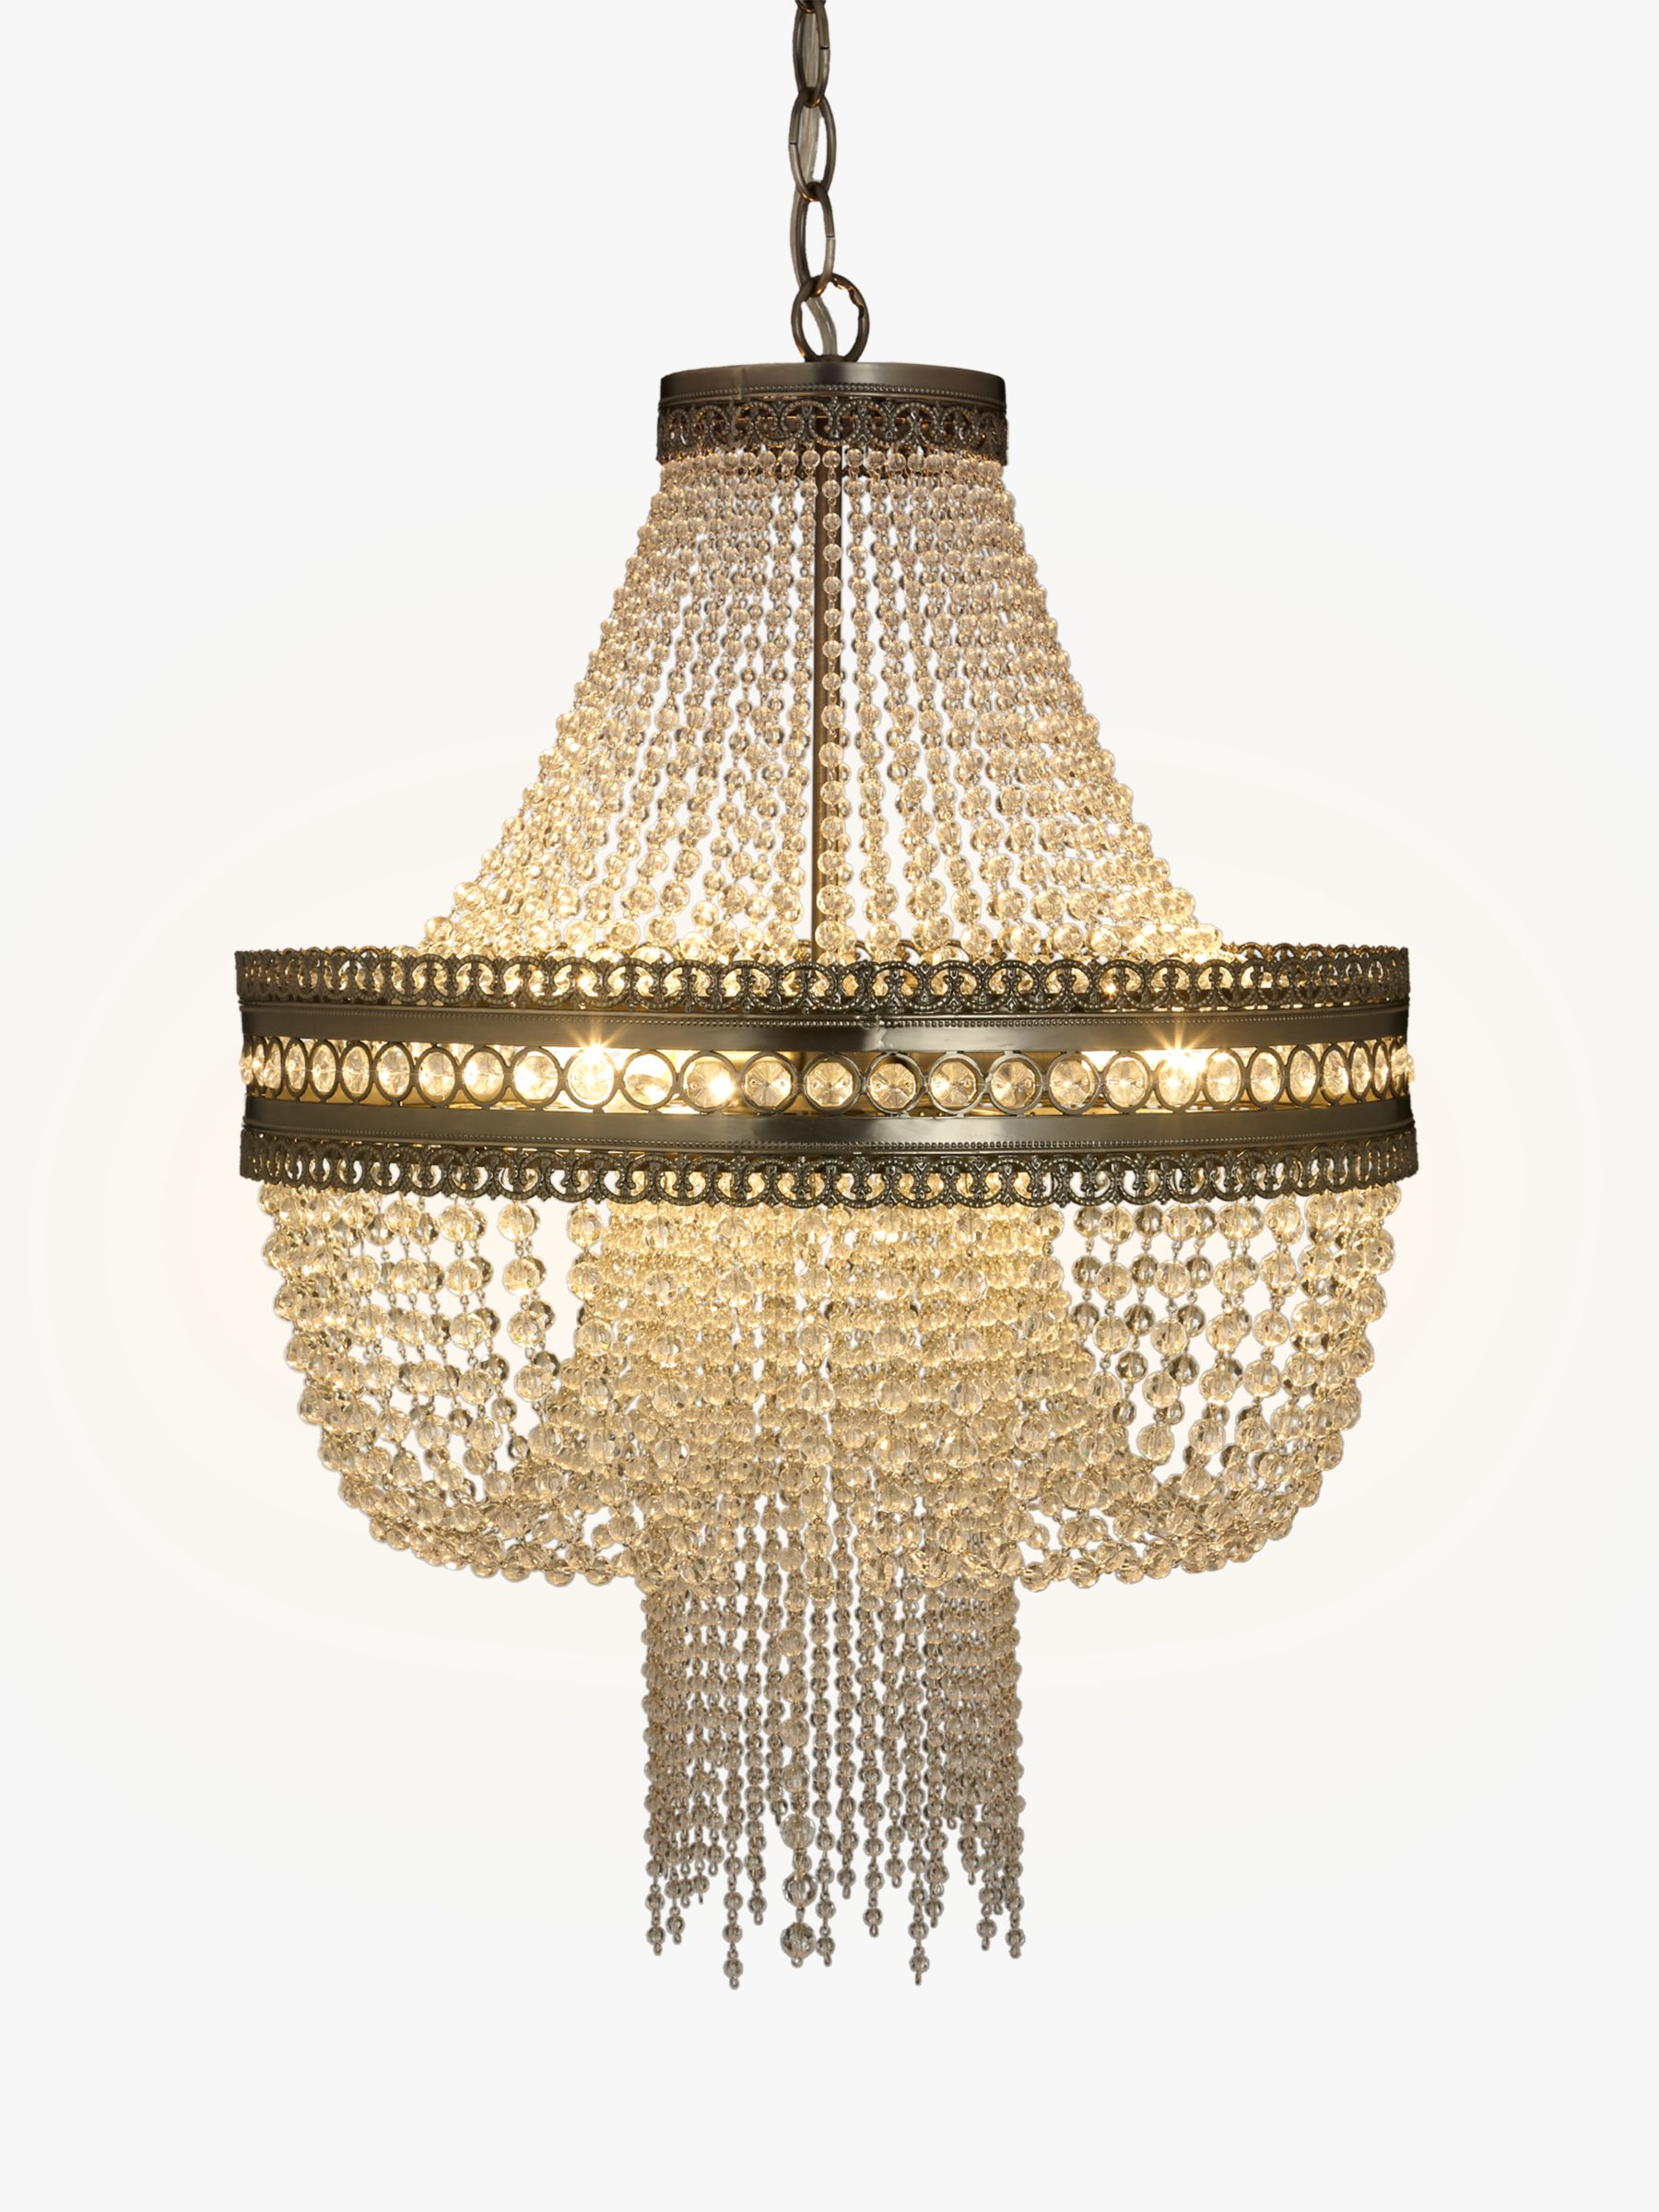 Image of: John Lewis Partners Lucia Crystal Chandelier Crystal Clear At John Lewis Partners